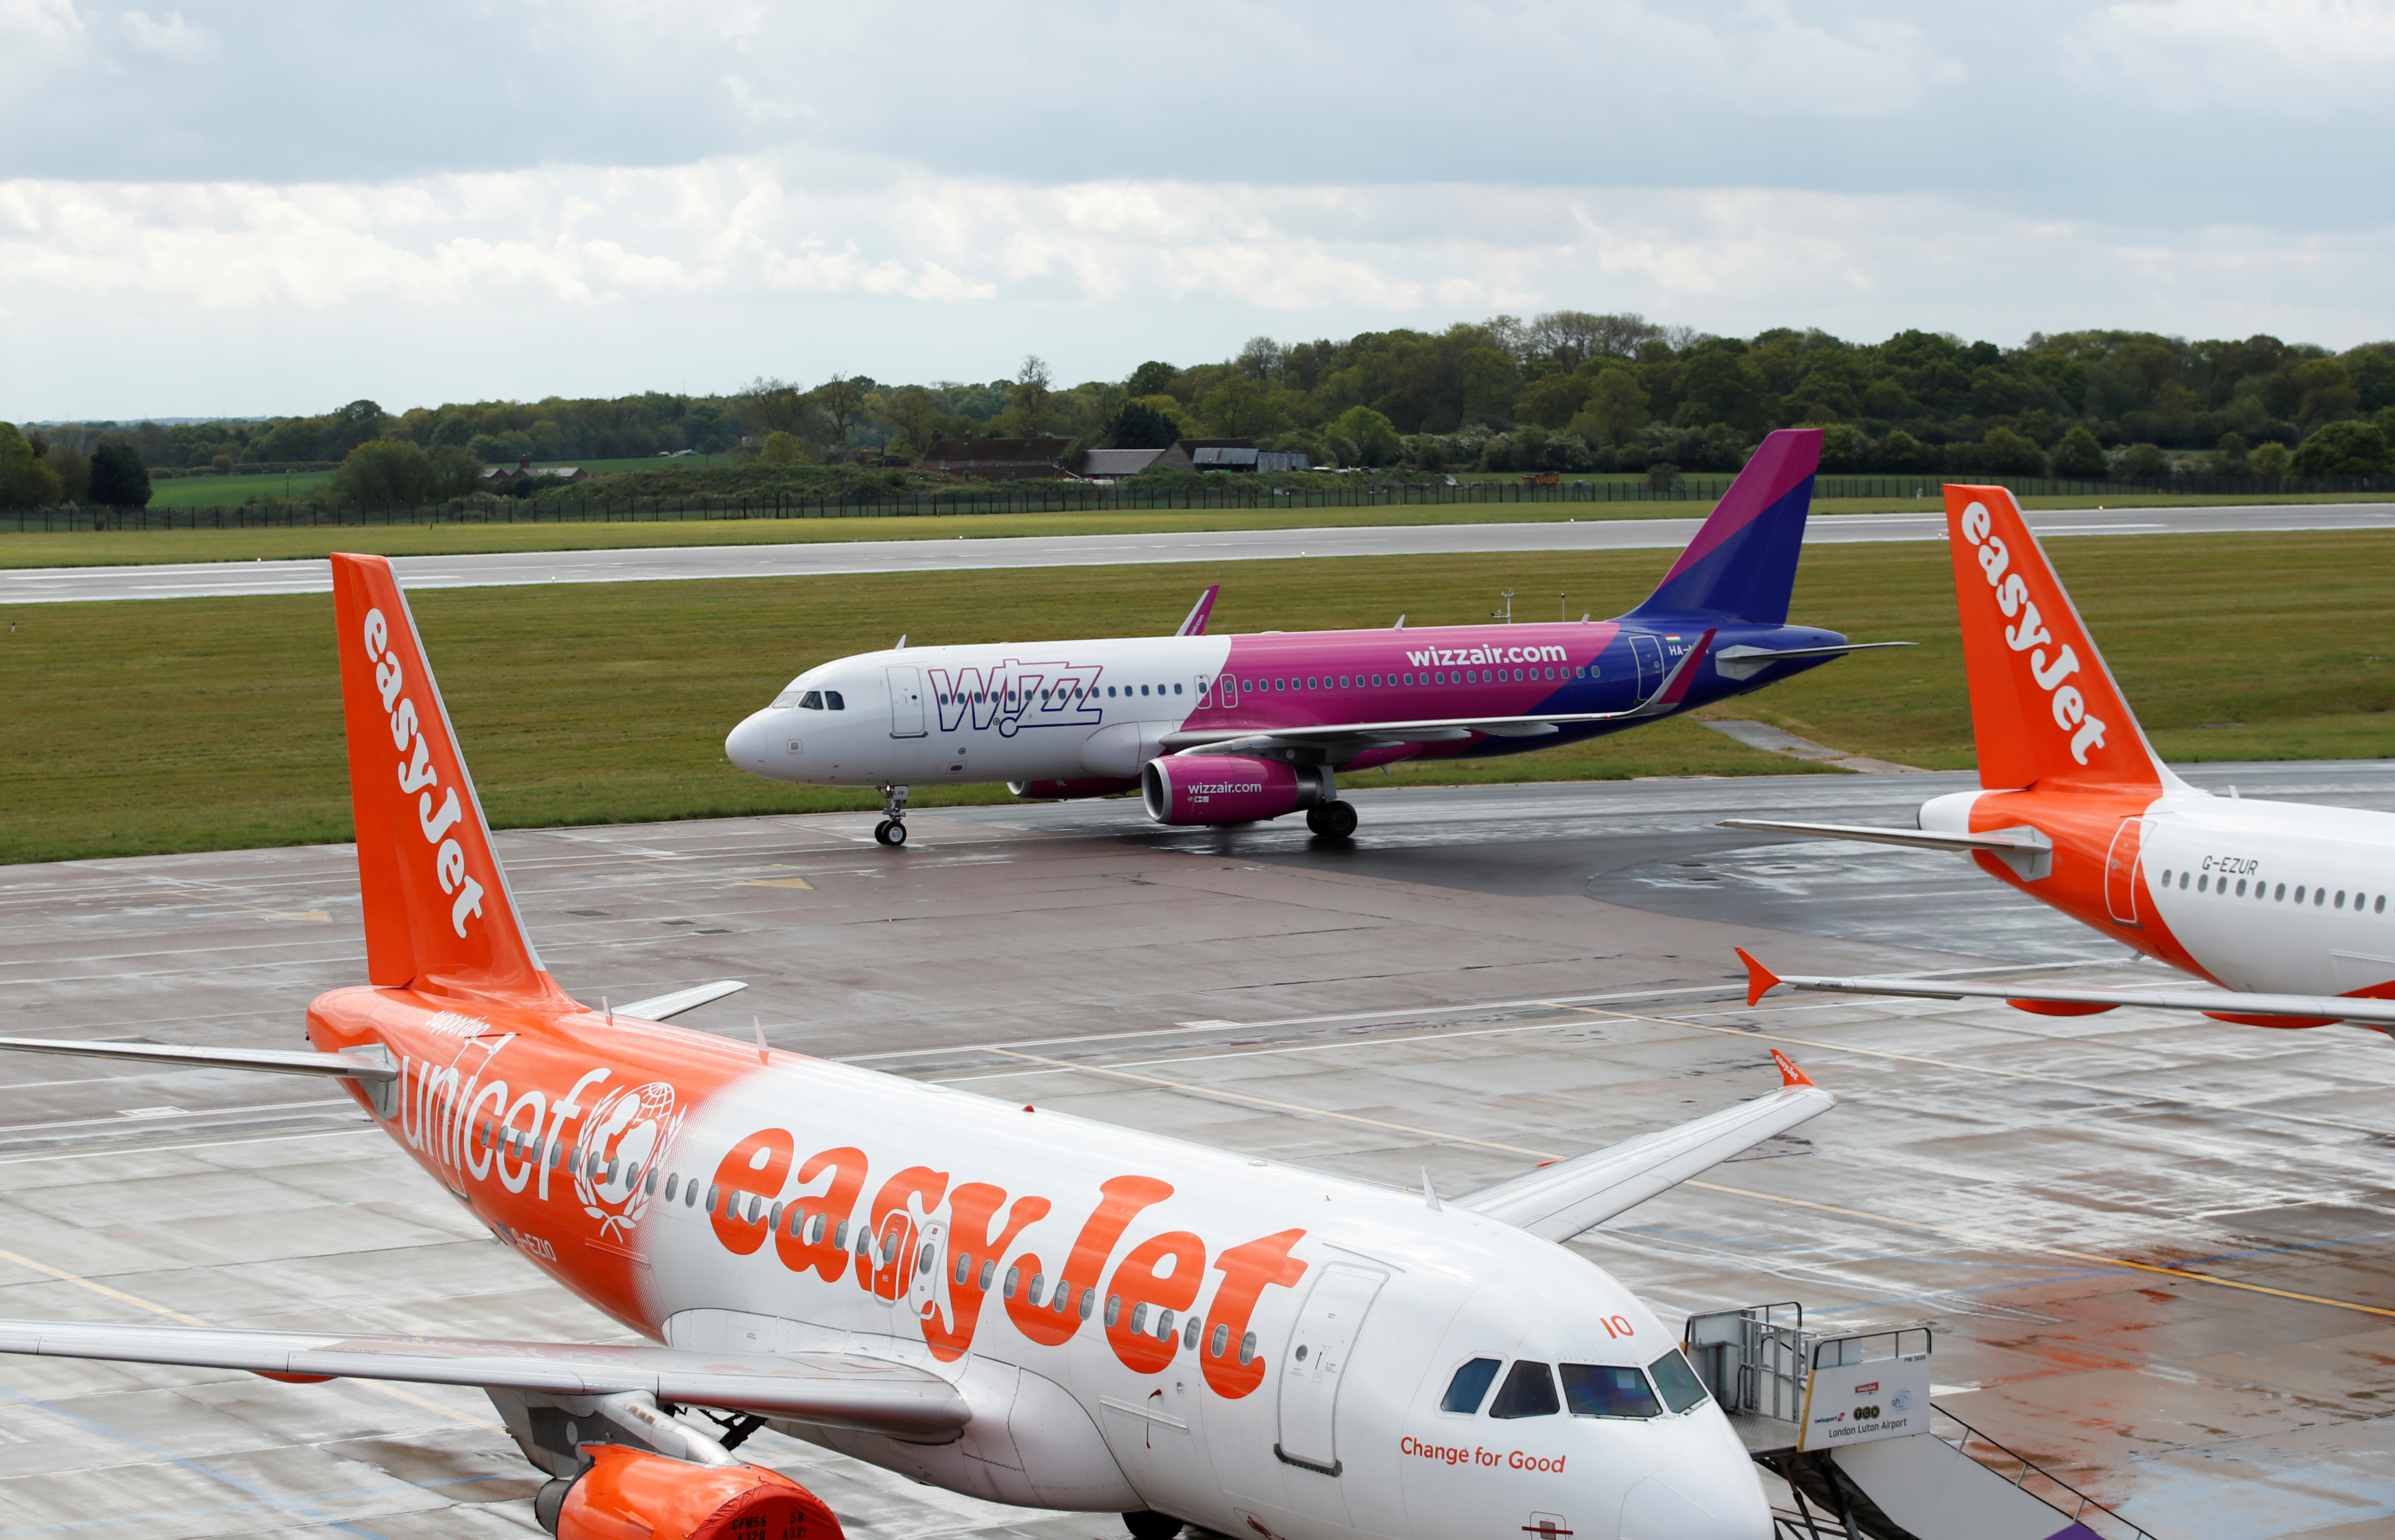 A Wizz Air Airbus A320 from Sofia, Bulgaria taxis to a gate after landing at Luton Airport after Wizz Air resumed flights today on some routes, following the outbreak of the coronavirus disease (COVID-19), Luton, Britain, May 1, 2020. REUTERS/Andrew Boyers/File Photo